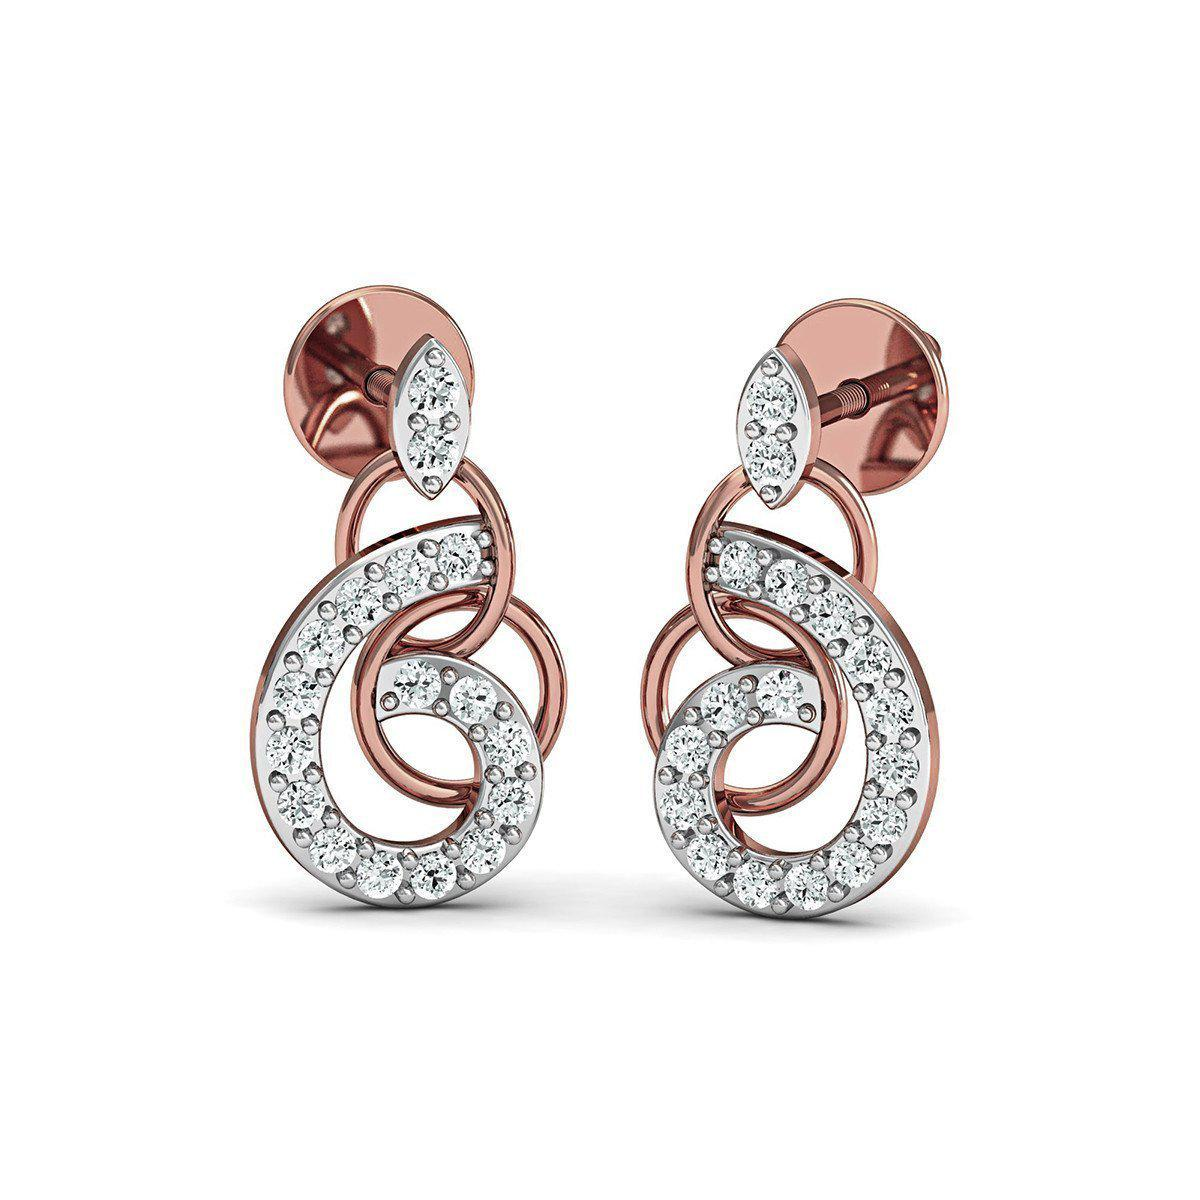 Diamoire Jewels Classic Pave Stud Earrings in 18kt Rose Gold aKqjul